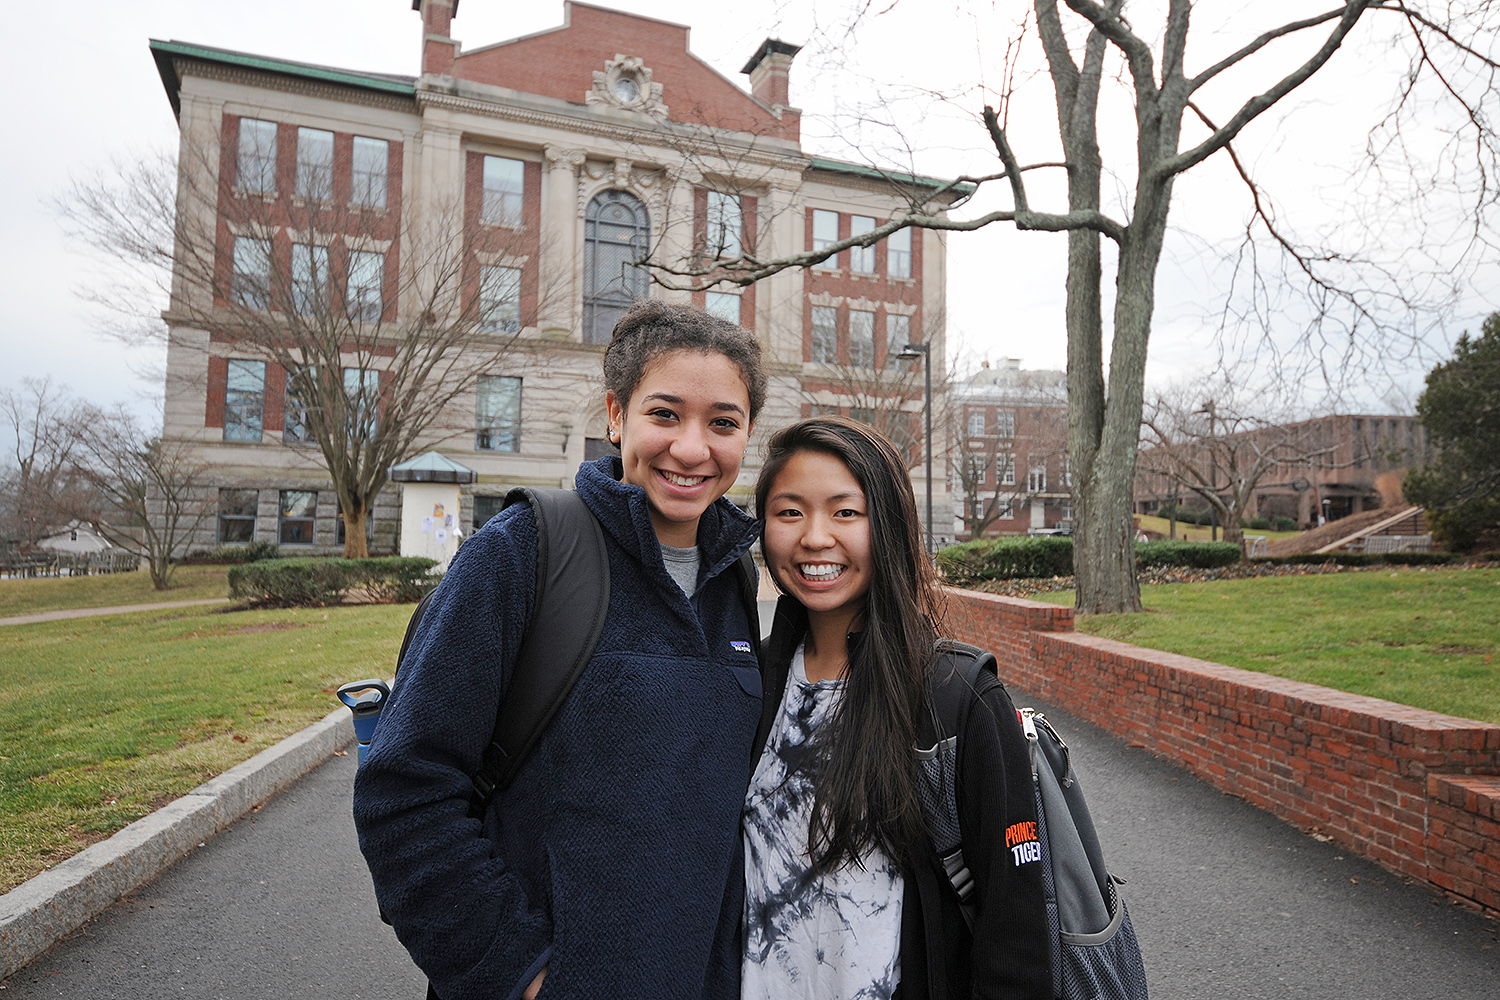 "Erica Yim '19 of Baltimore, M.D. and and Allegra Fils-Aime '19 of Long Island, N.Y. were most elated to return to Wesleyan to see each other and other friends. ""We are roommates in Butts C, and we missed each other. We're glad to be back at Wes,"" Allegra said."